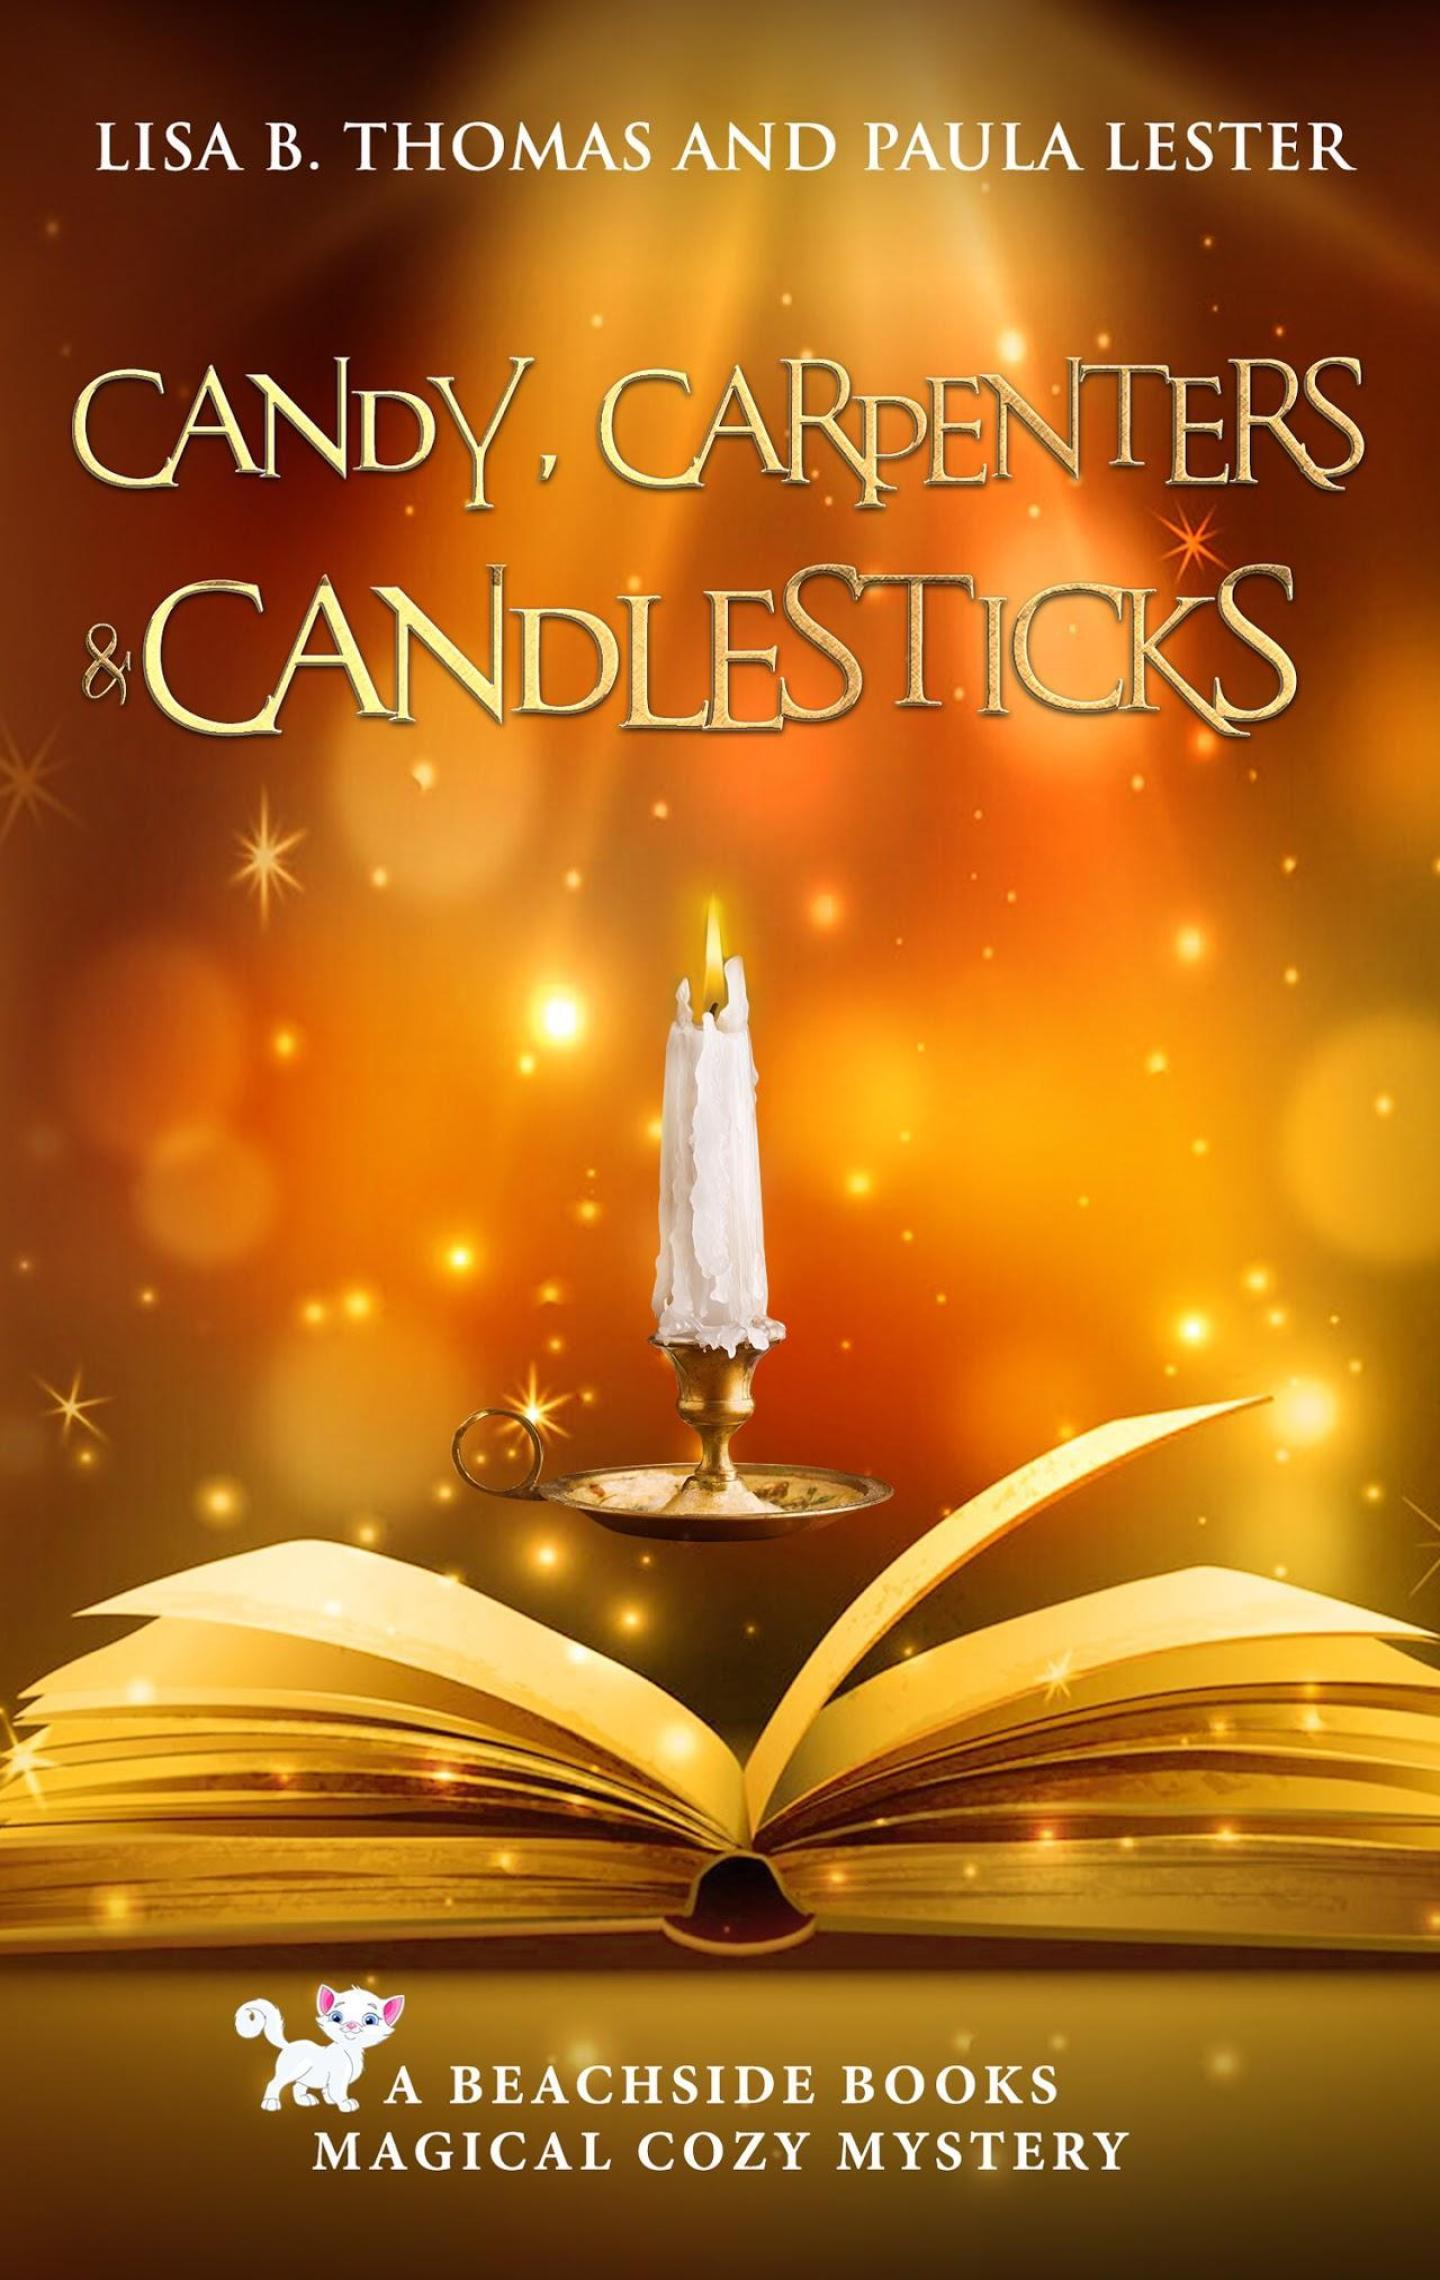 Candy, Carpenters and Candlesticks (Beachside Books 4)